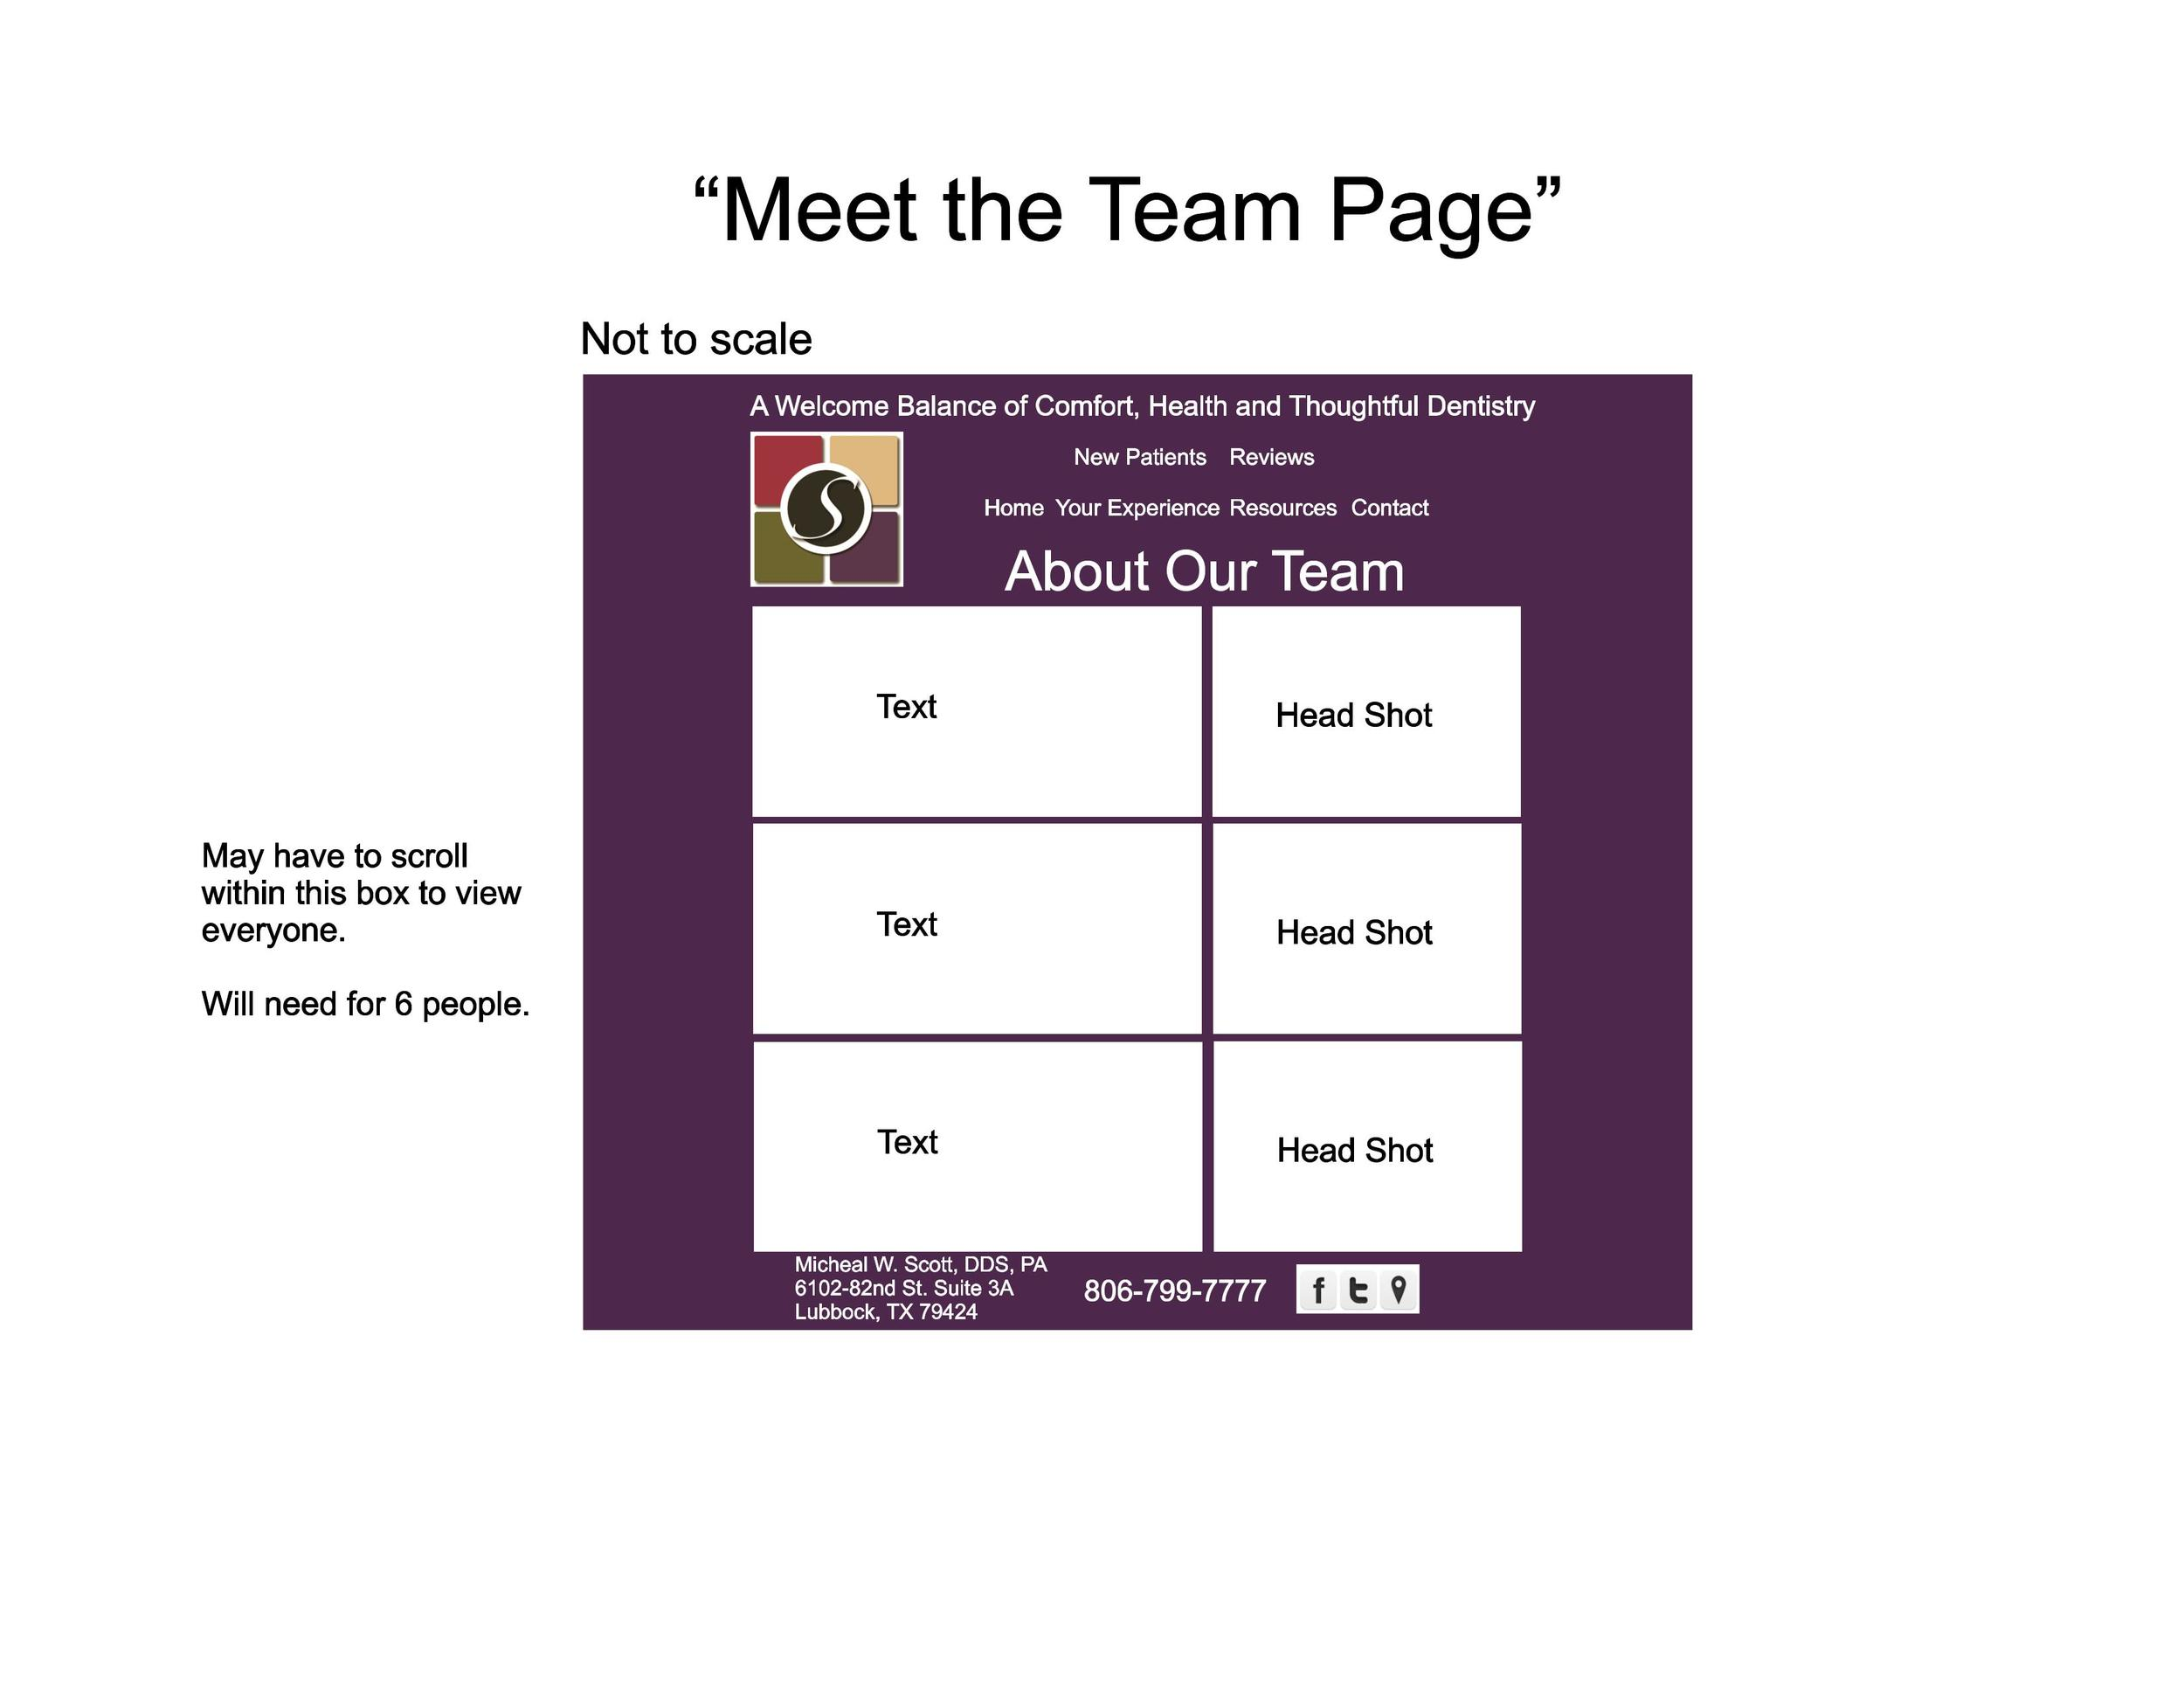 Meet the Team Page.jpg